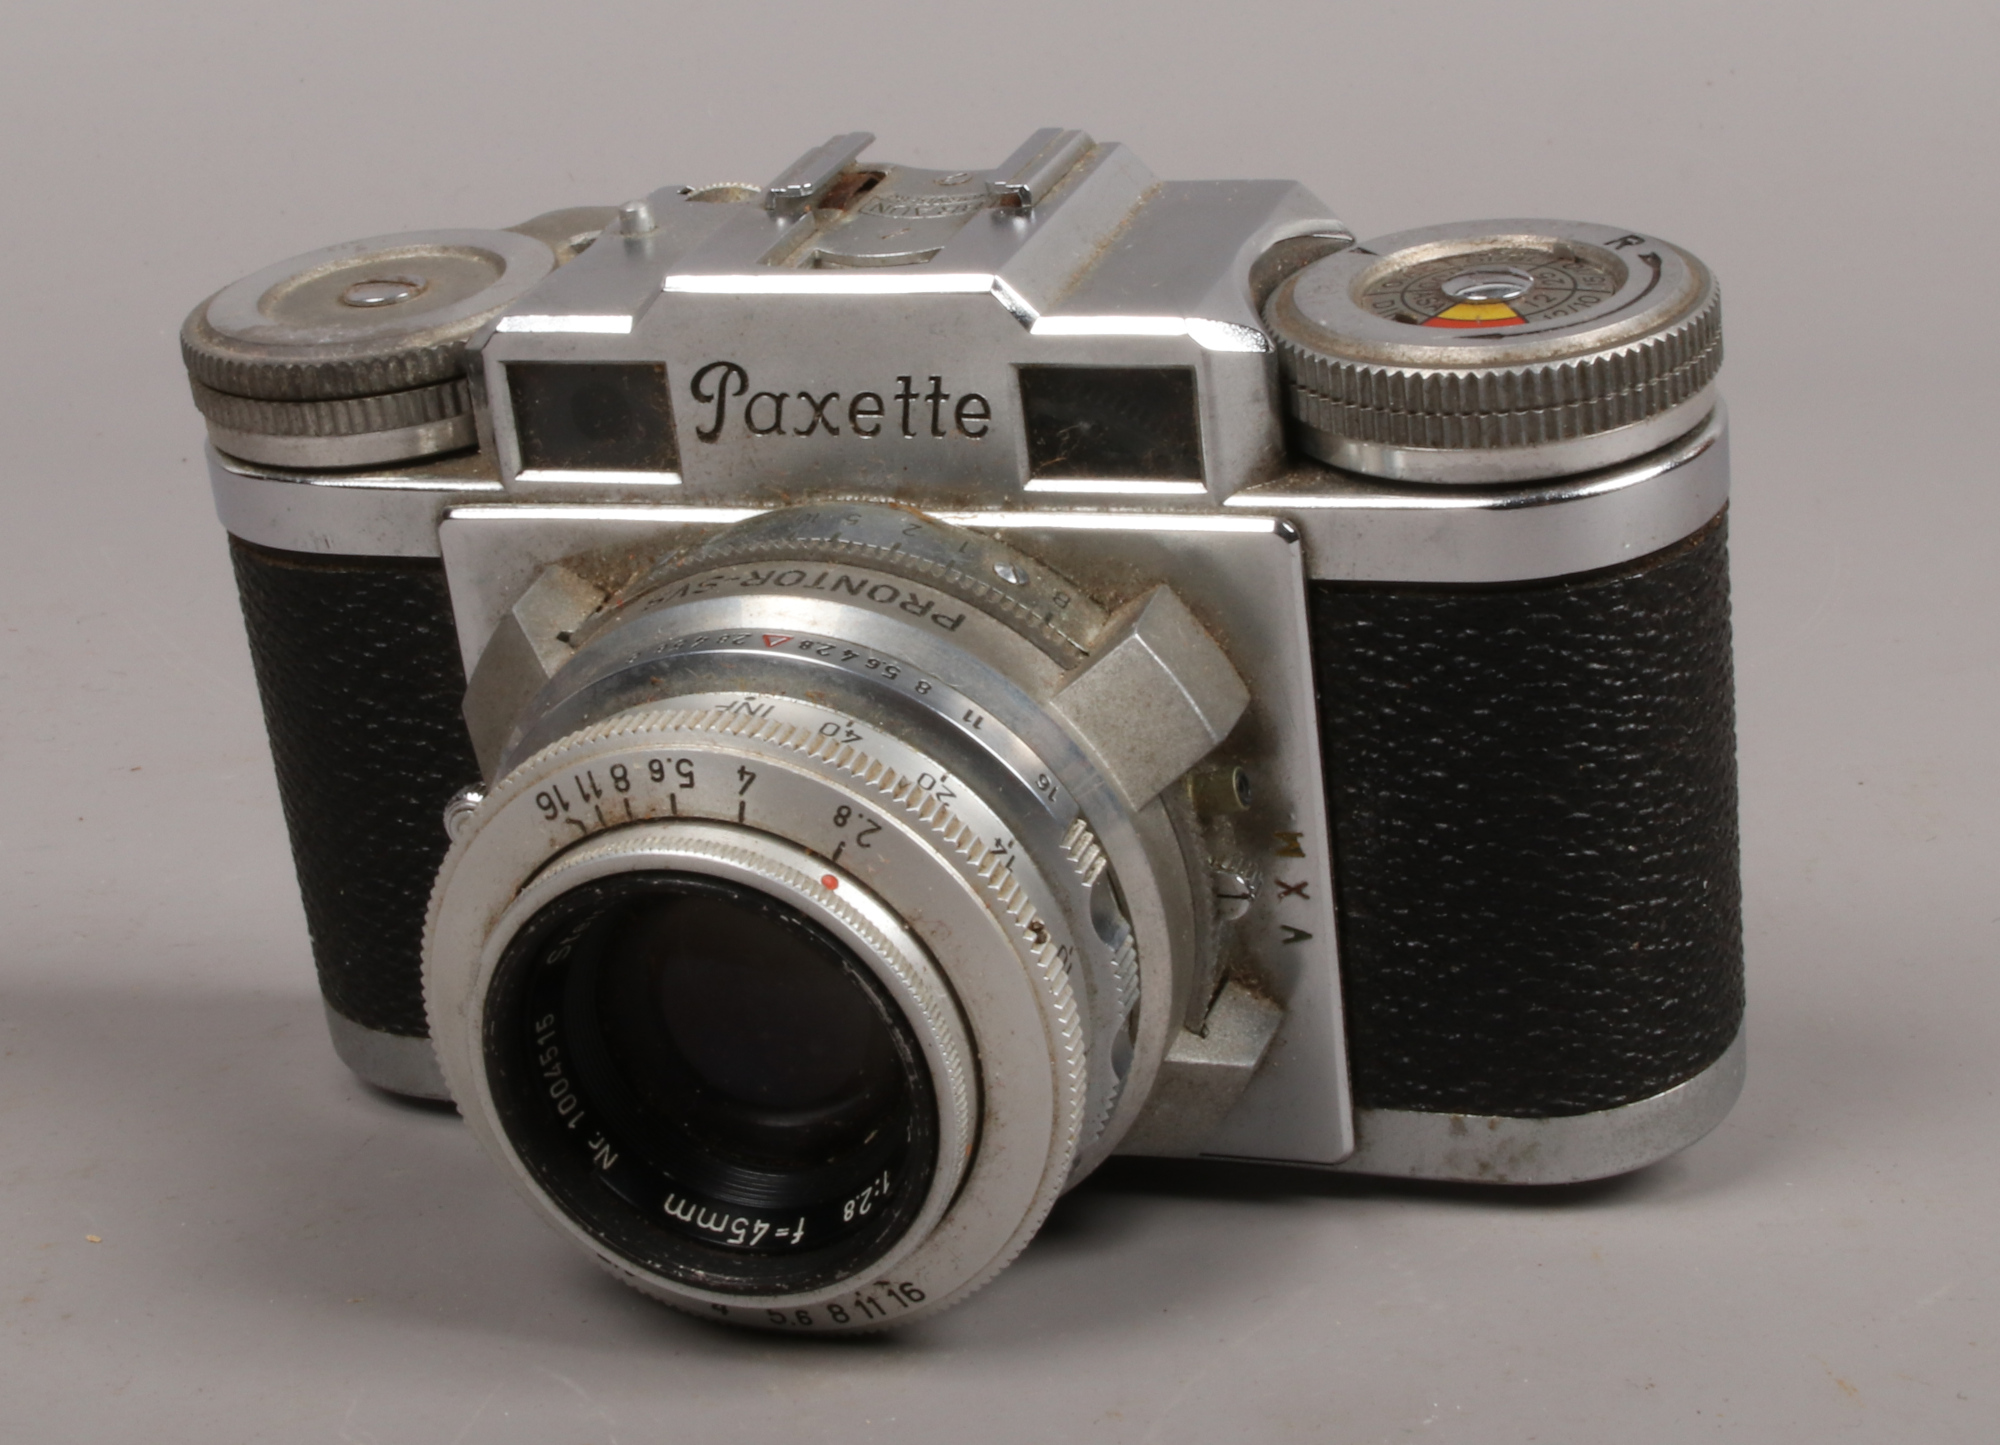 Lot 31 - A Braun Paxette Prontor - SVS range finder camera in manufacturers case made in Germany.Condition